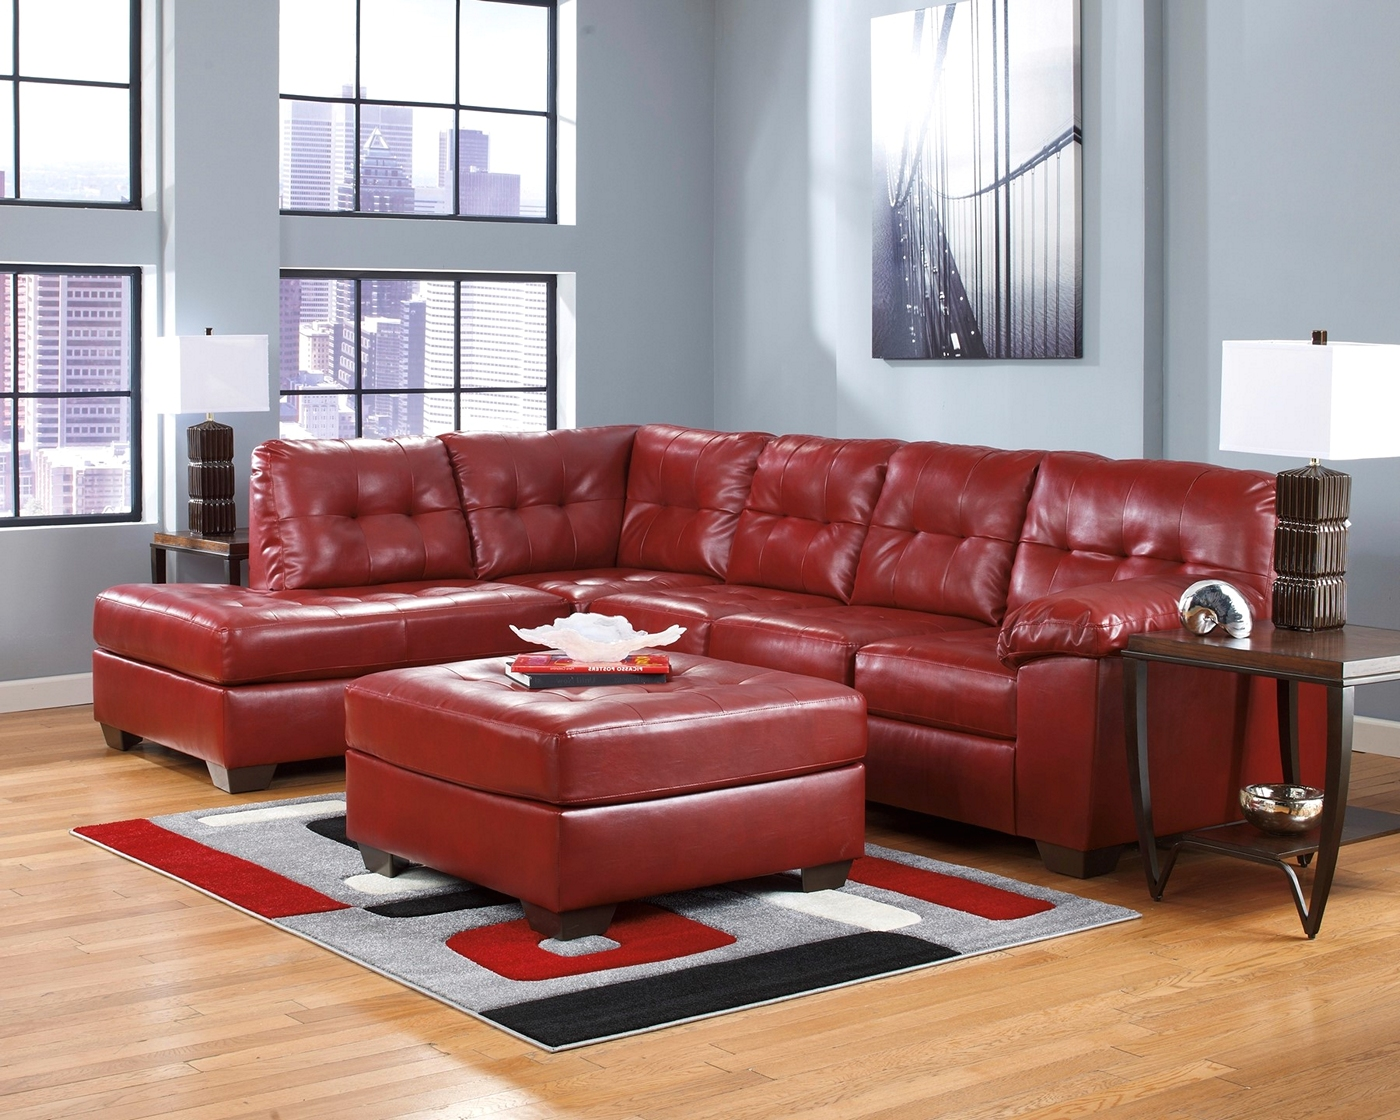 Soho Contemporary Red Leather Sectional Sofa w Left Chaise